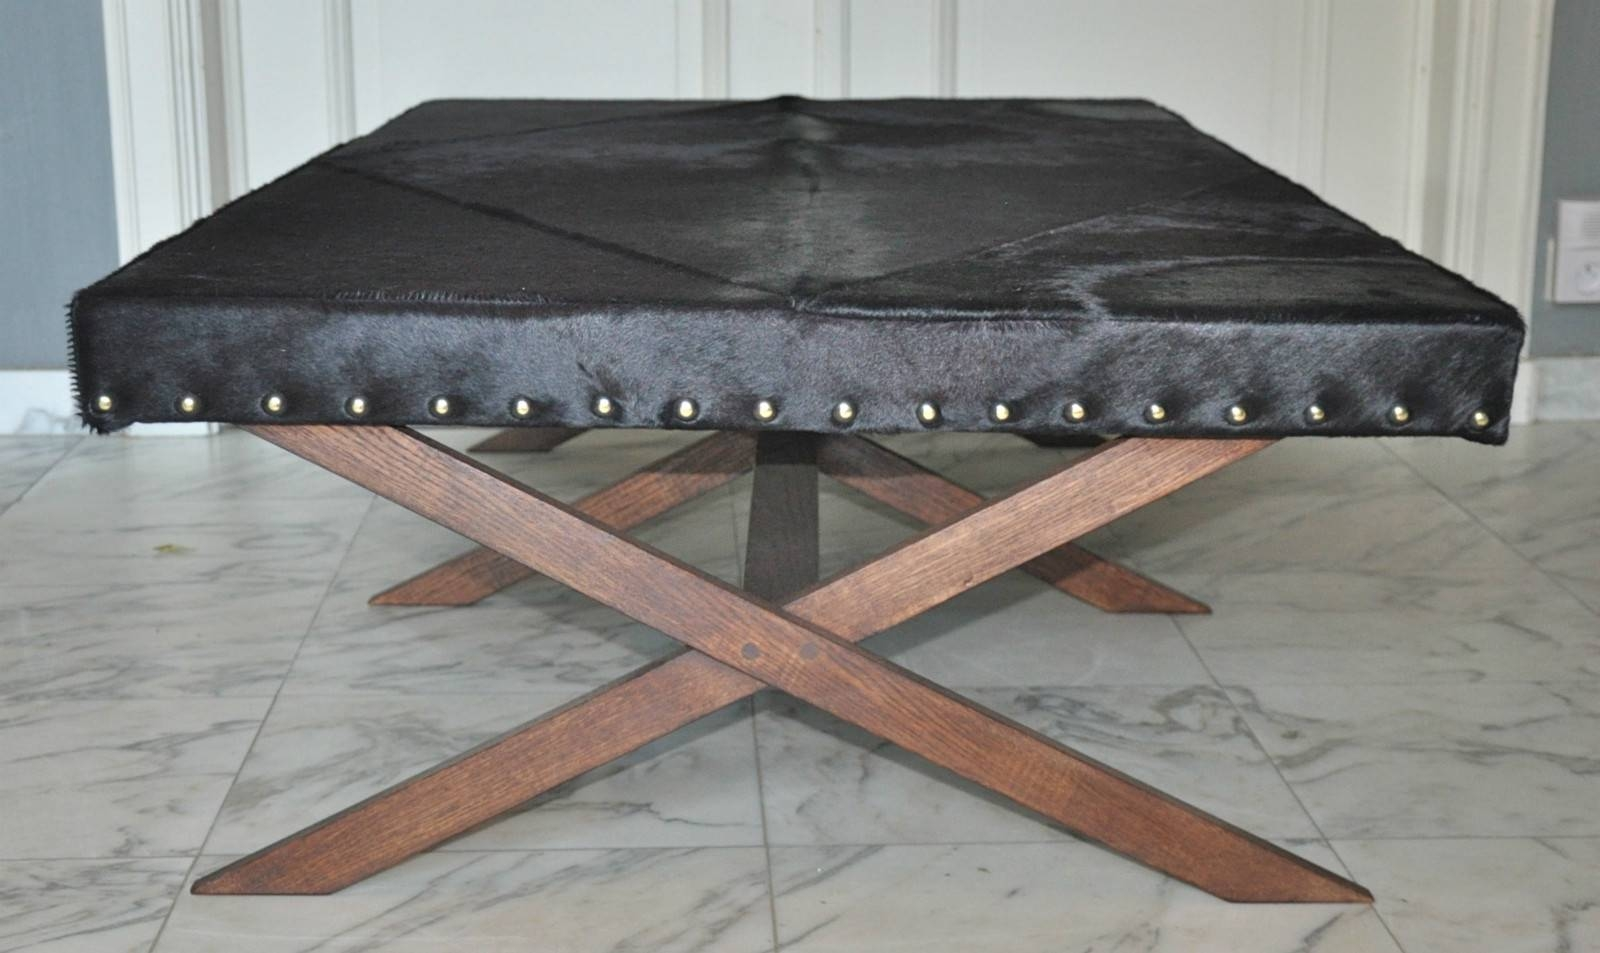 Bespoke Coffee Table I - 3 Tables/consoles - Furniture - Monique with regard to Bespoke Coffee Tables (Image 3 of 30)